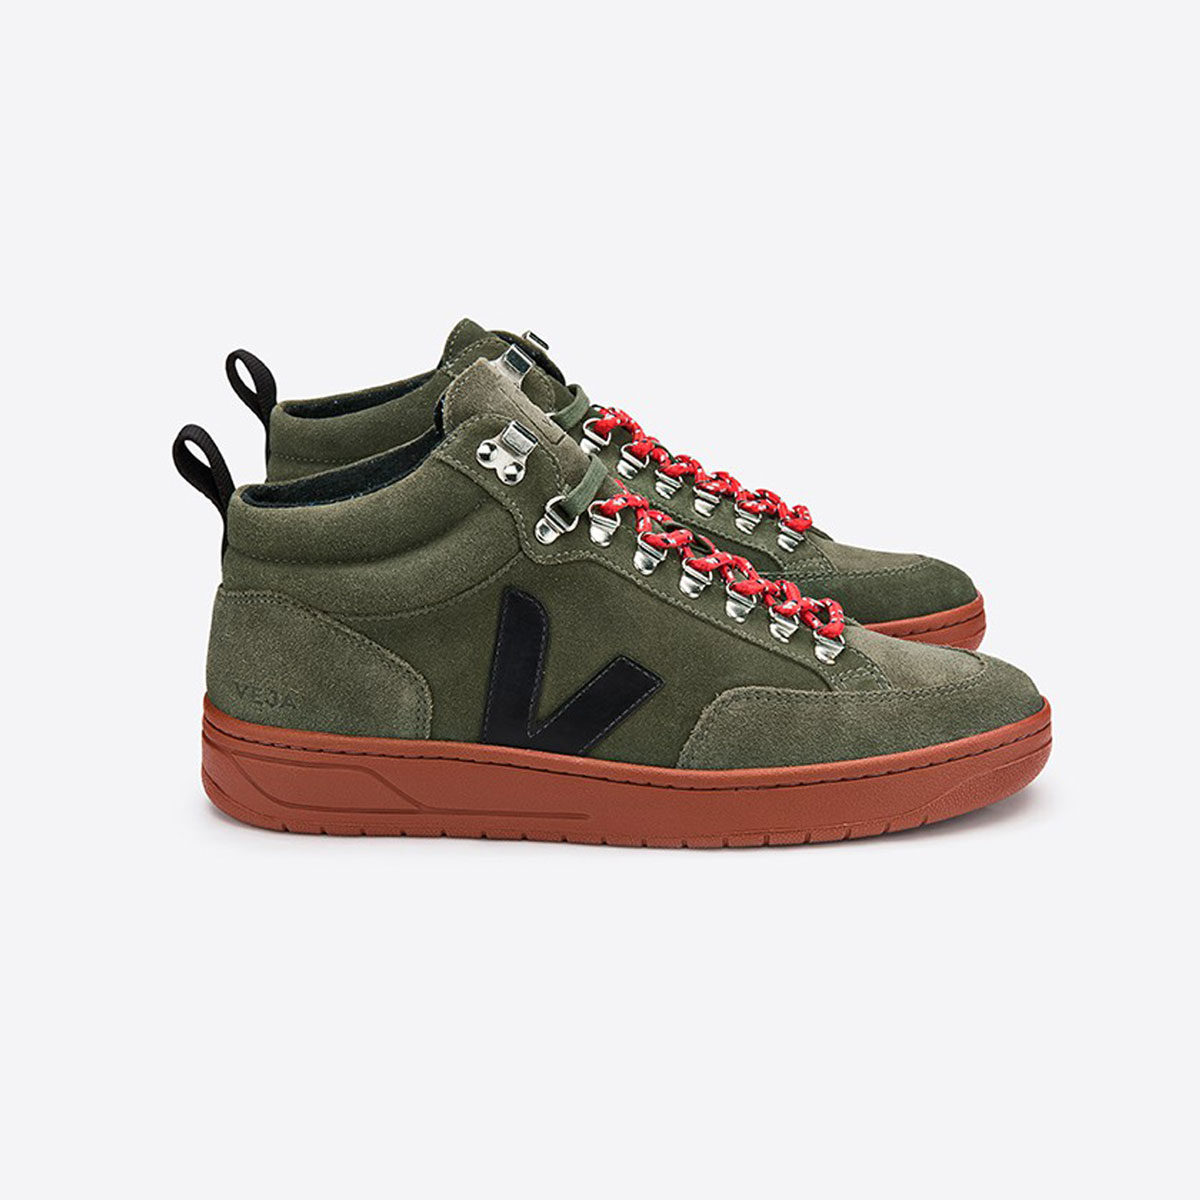 veja roraims suede sneakers high top